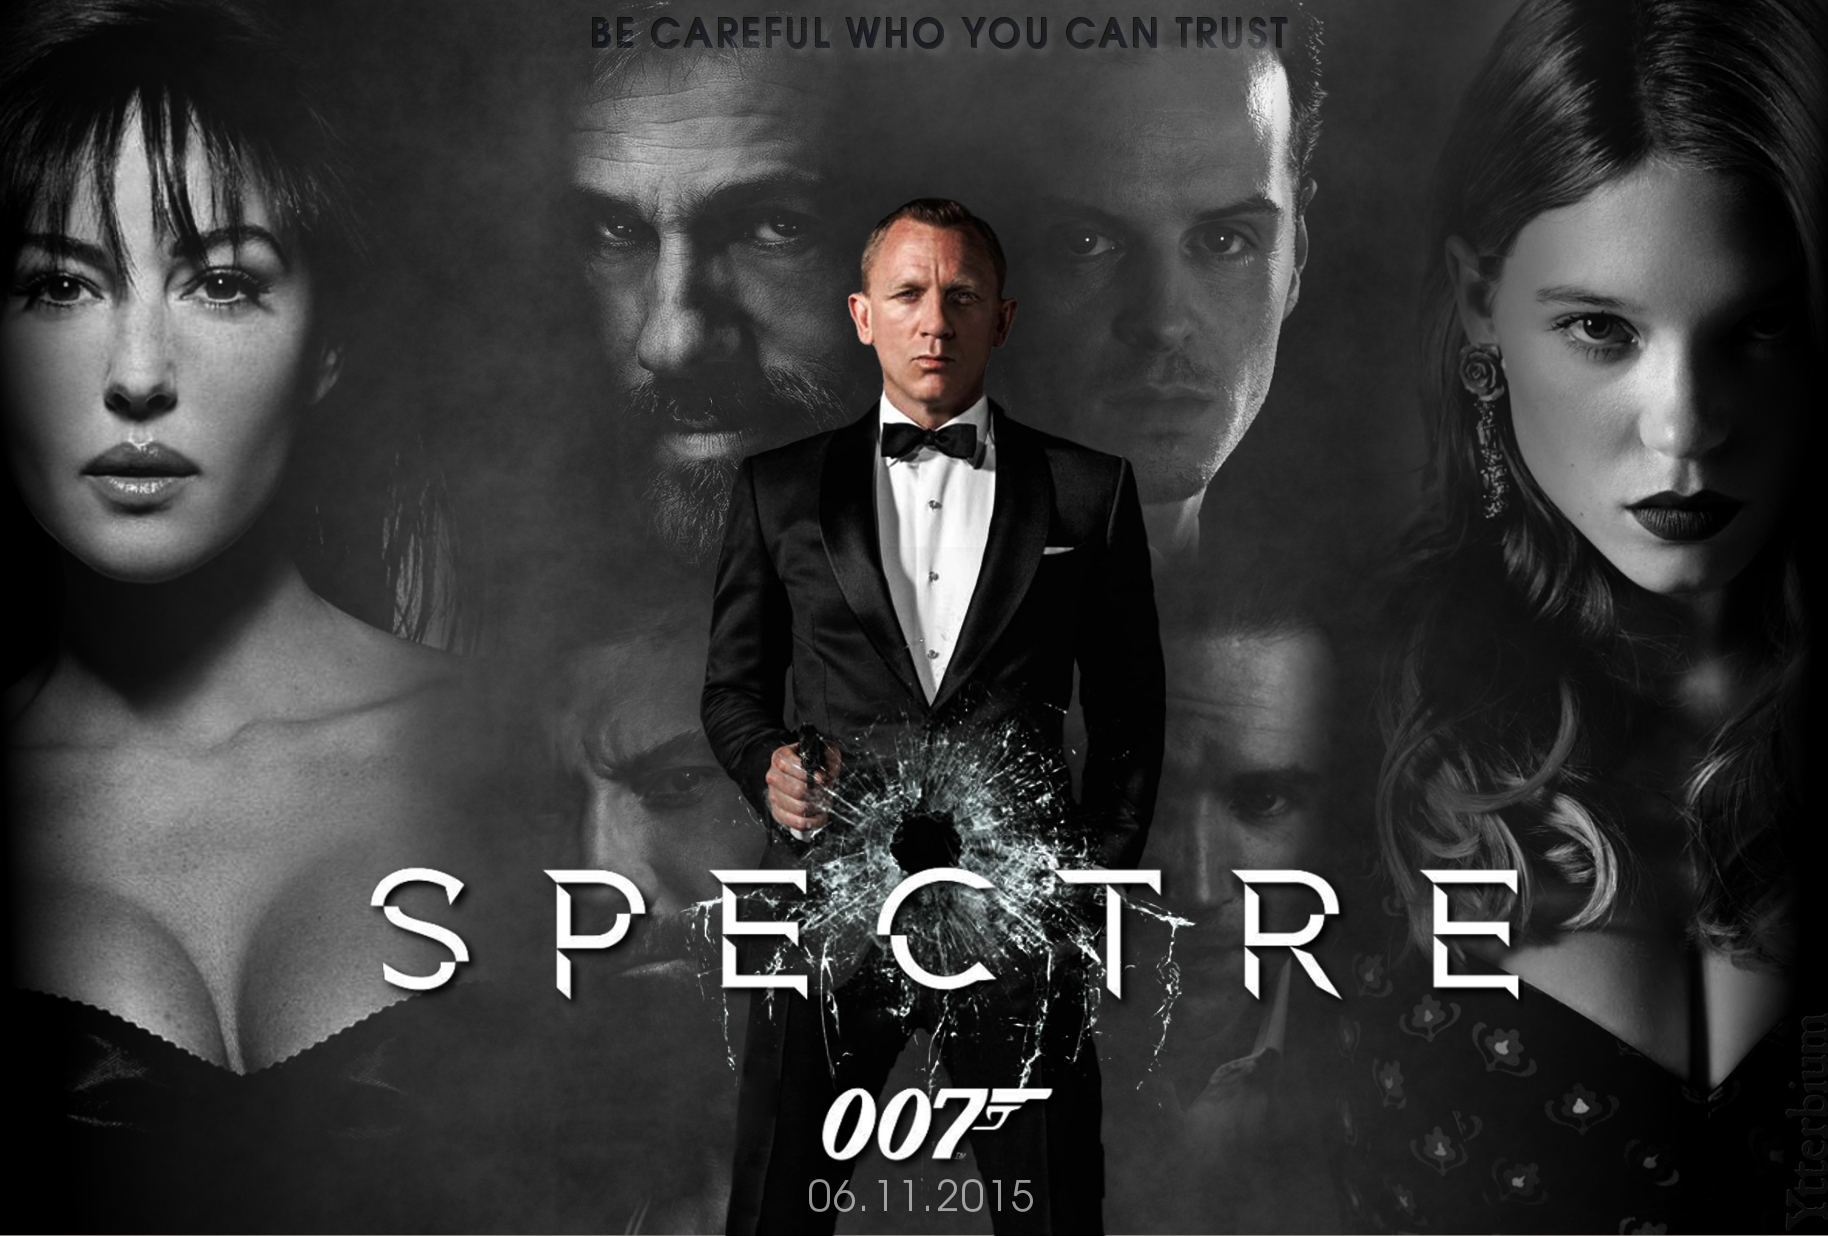 James_Bond_Spectre_007_film_película_Daniel_Craig_Sam_Mendes_2015_Monica_Bellucci